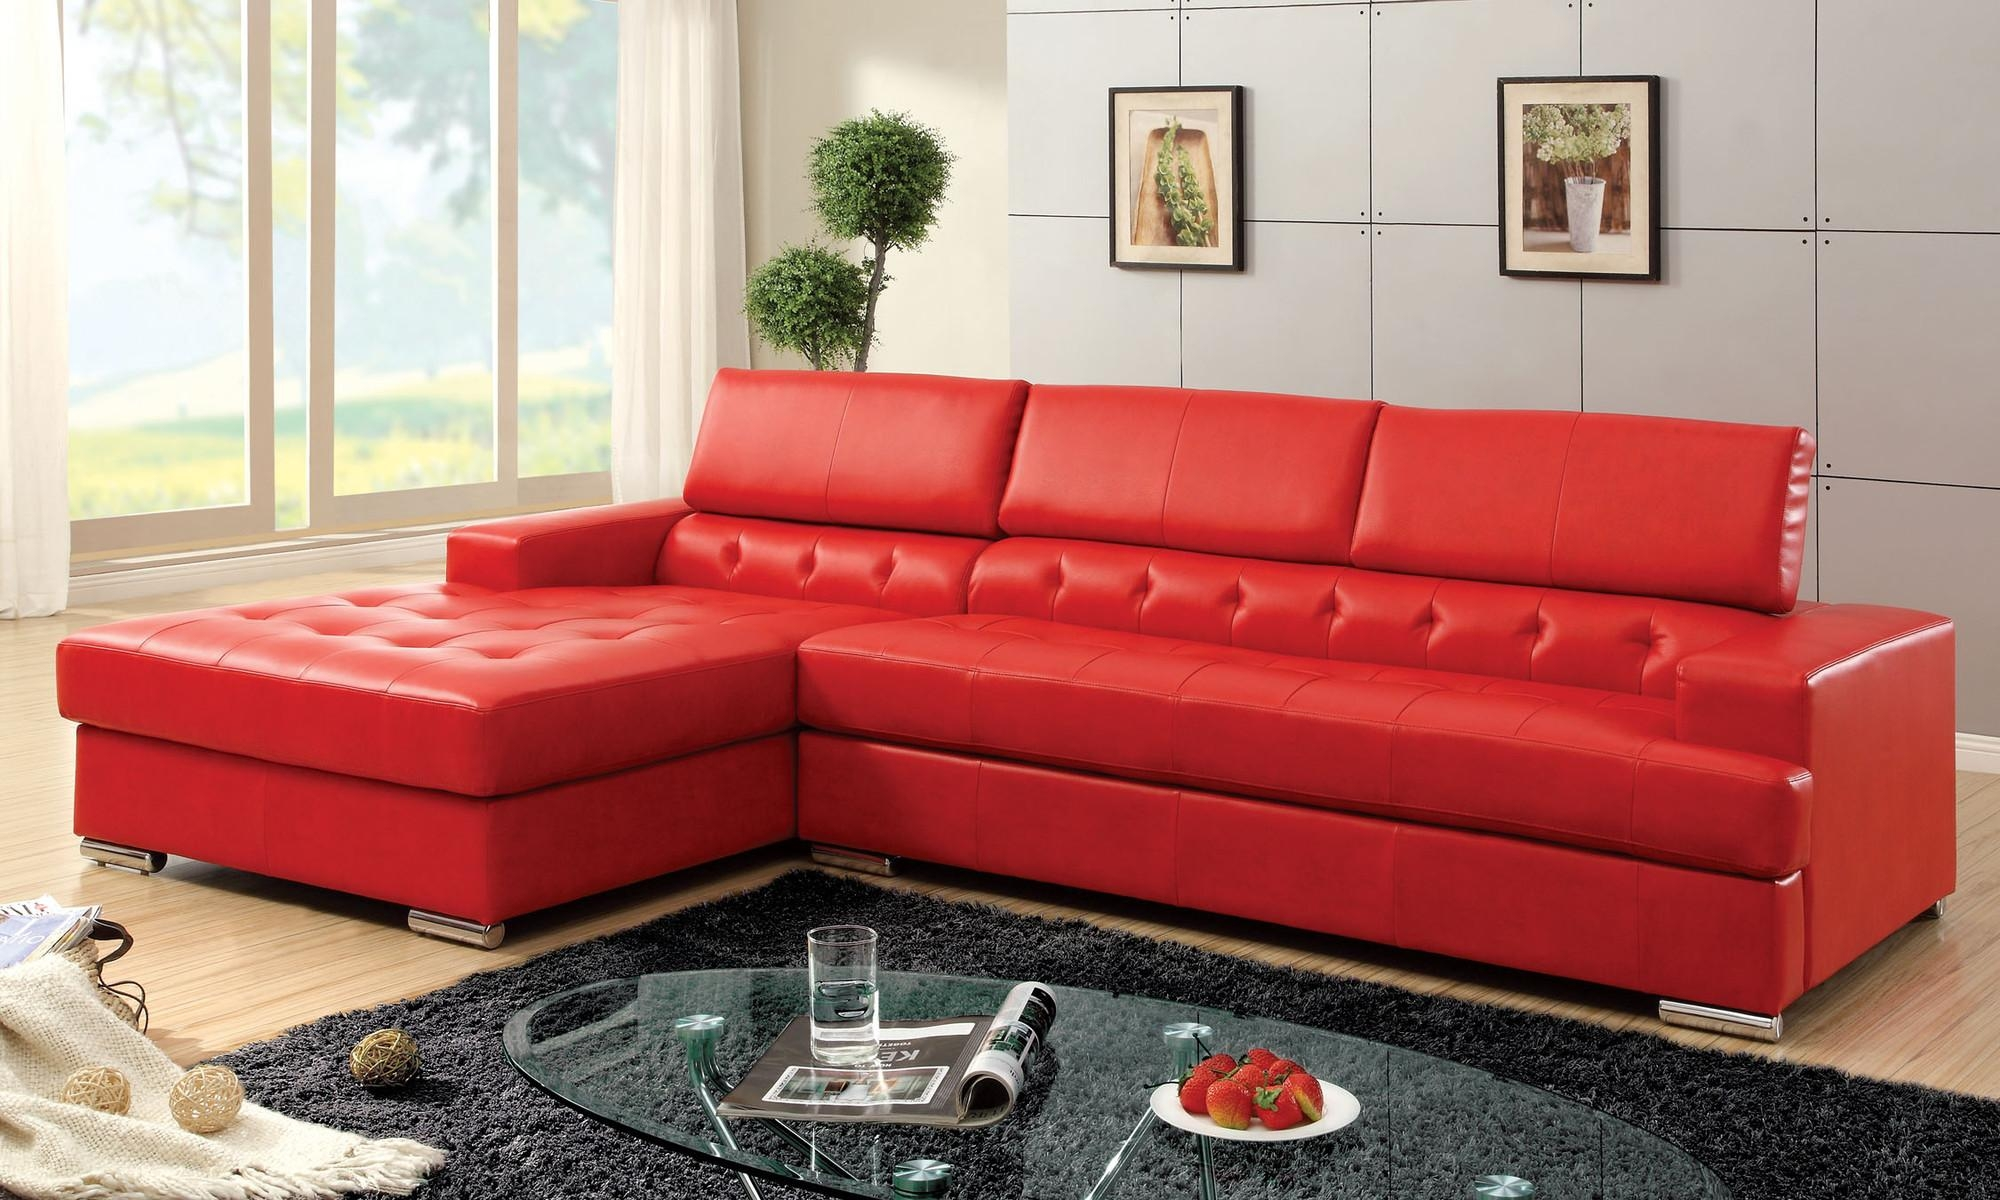 Deep Red Leather Sofa | Tehranmix Decoration Regarding Dark Red Leather Sofas (Image 10 of 20)